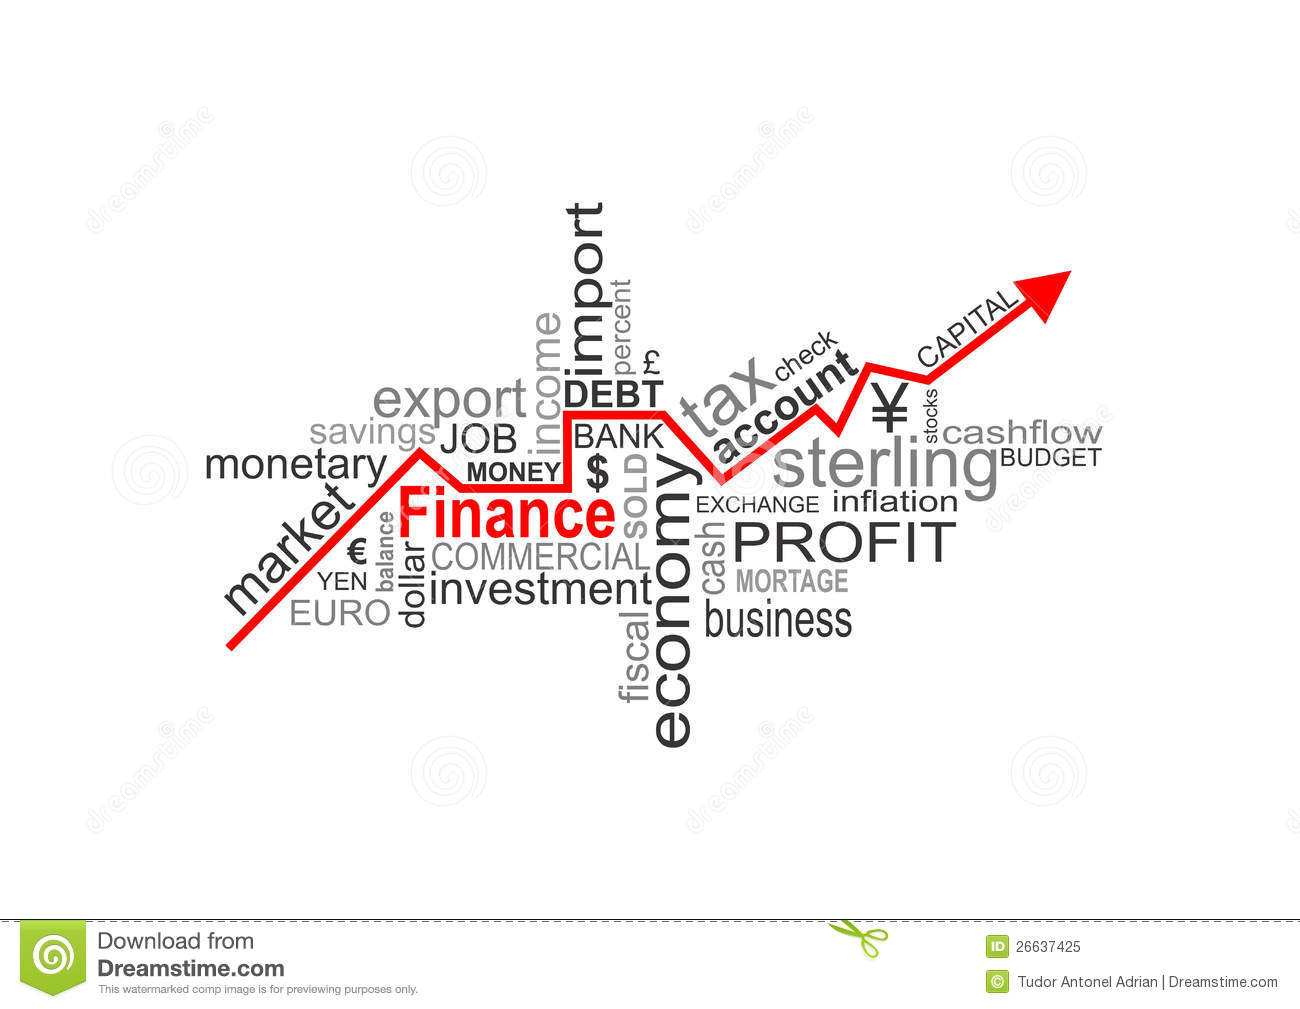 Finance words stock illustration. Illustration of business